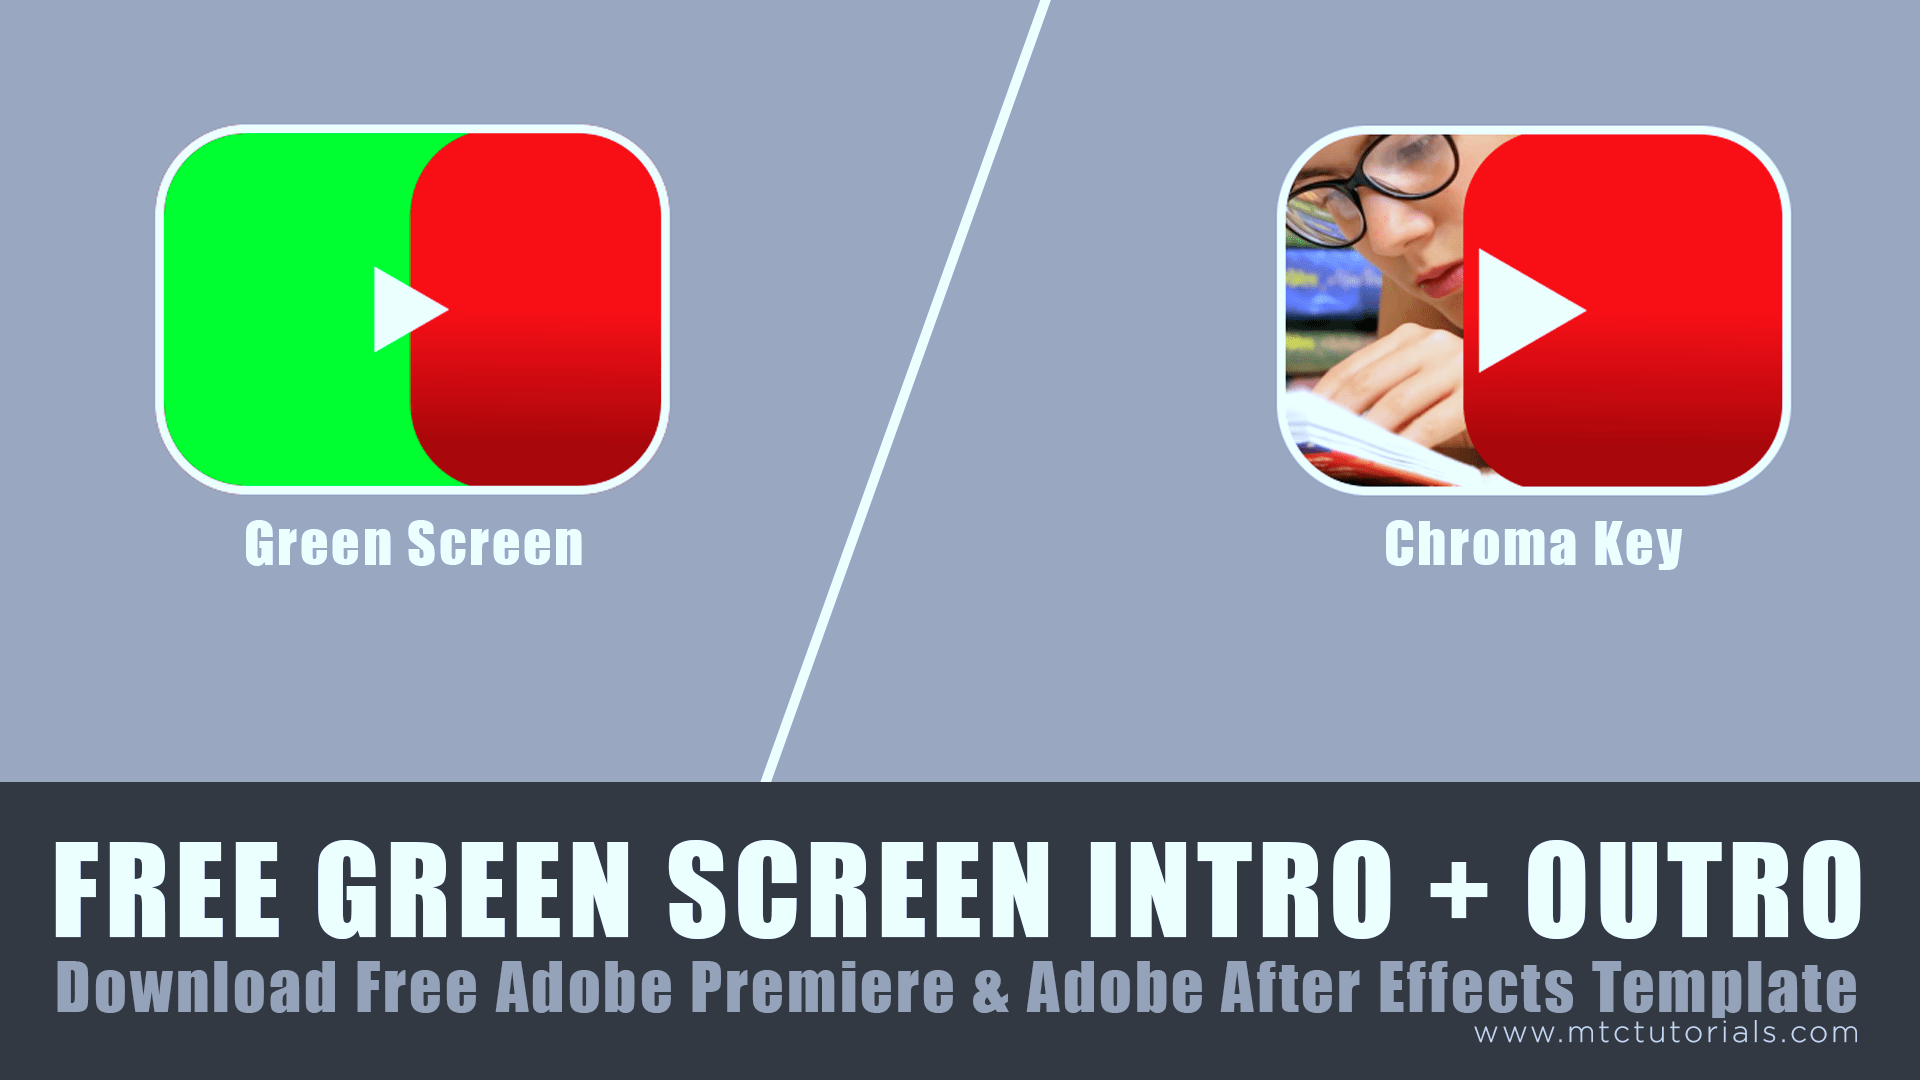 Youtube Intro Plus Outro Free Green Screen Footage, Adobe